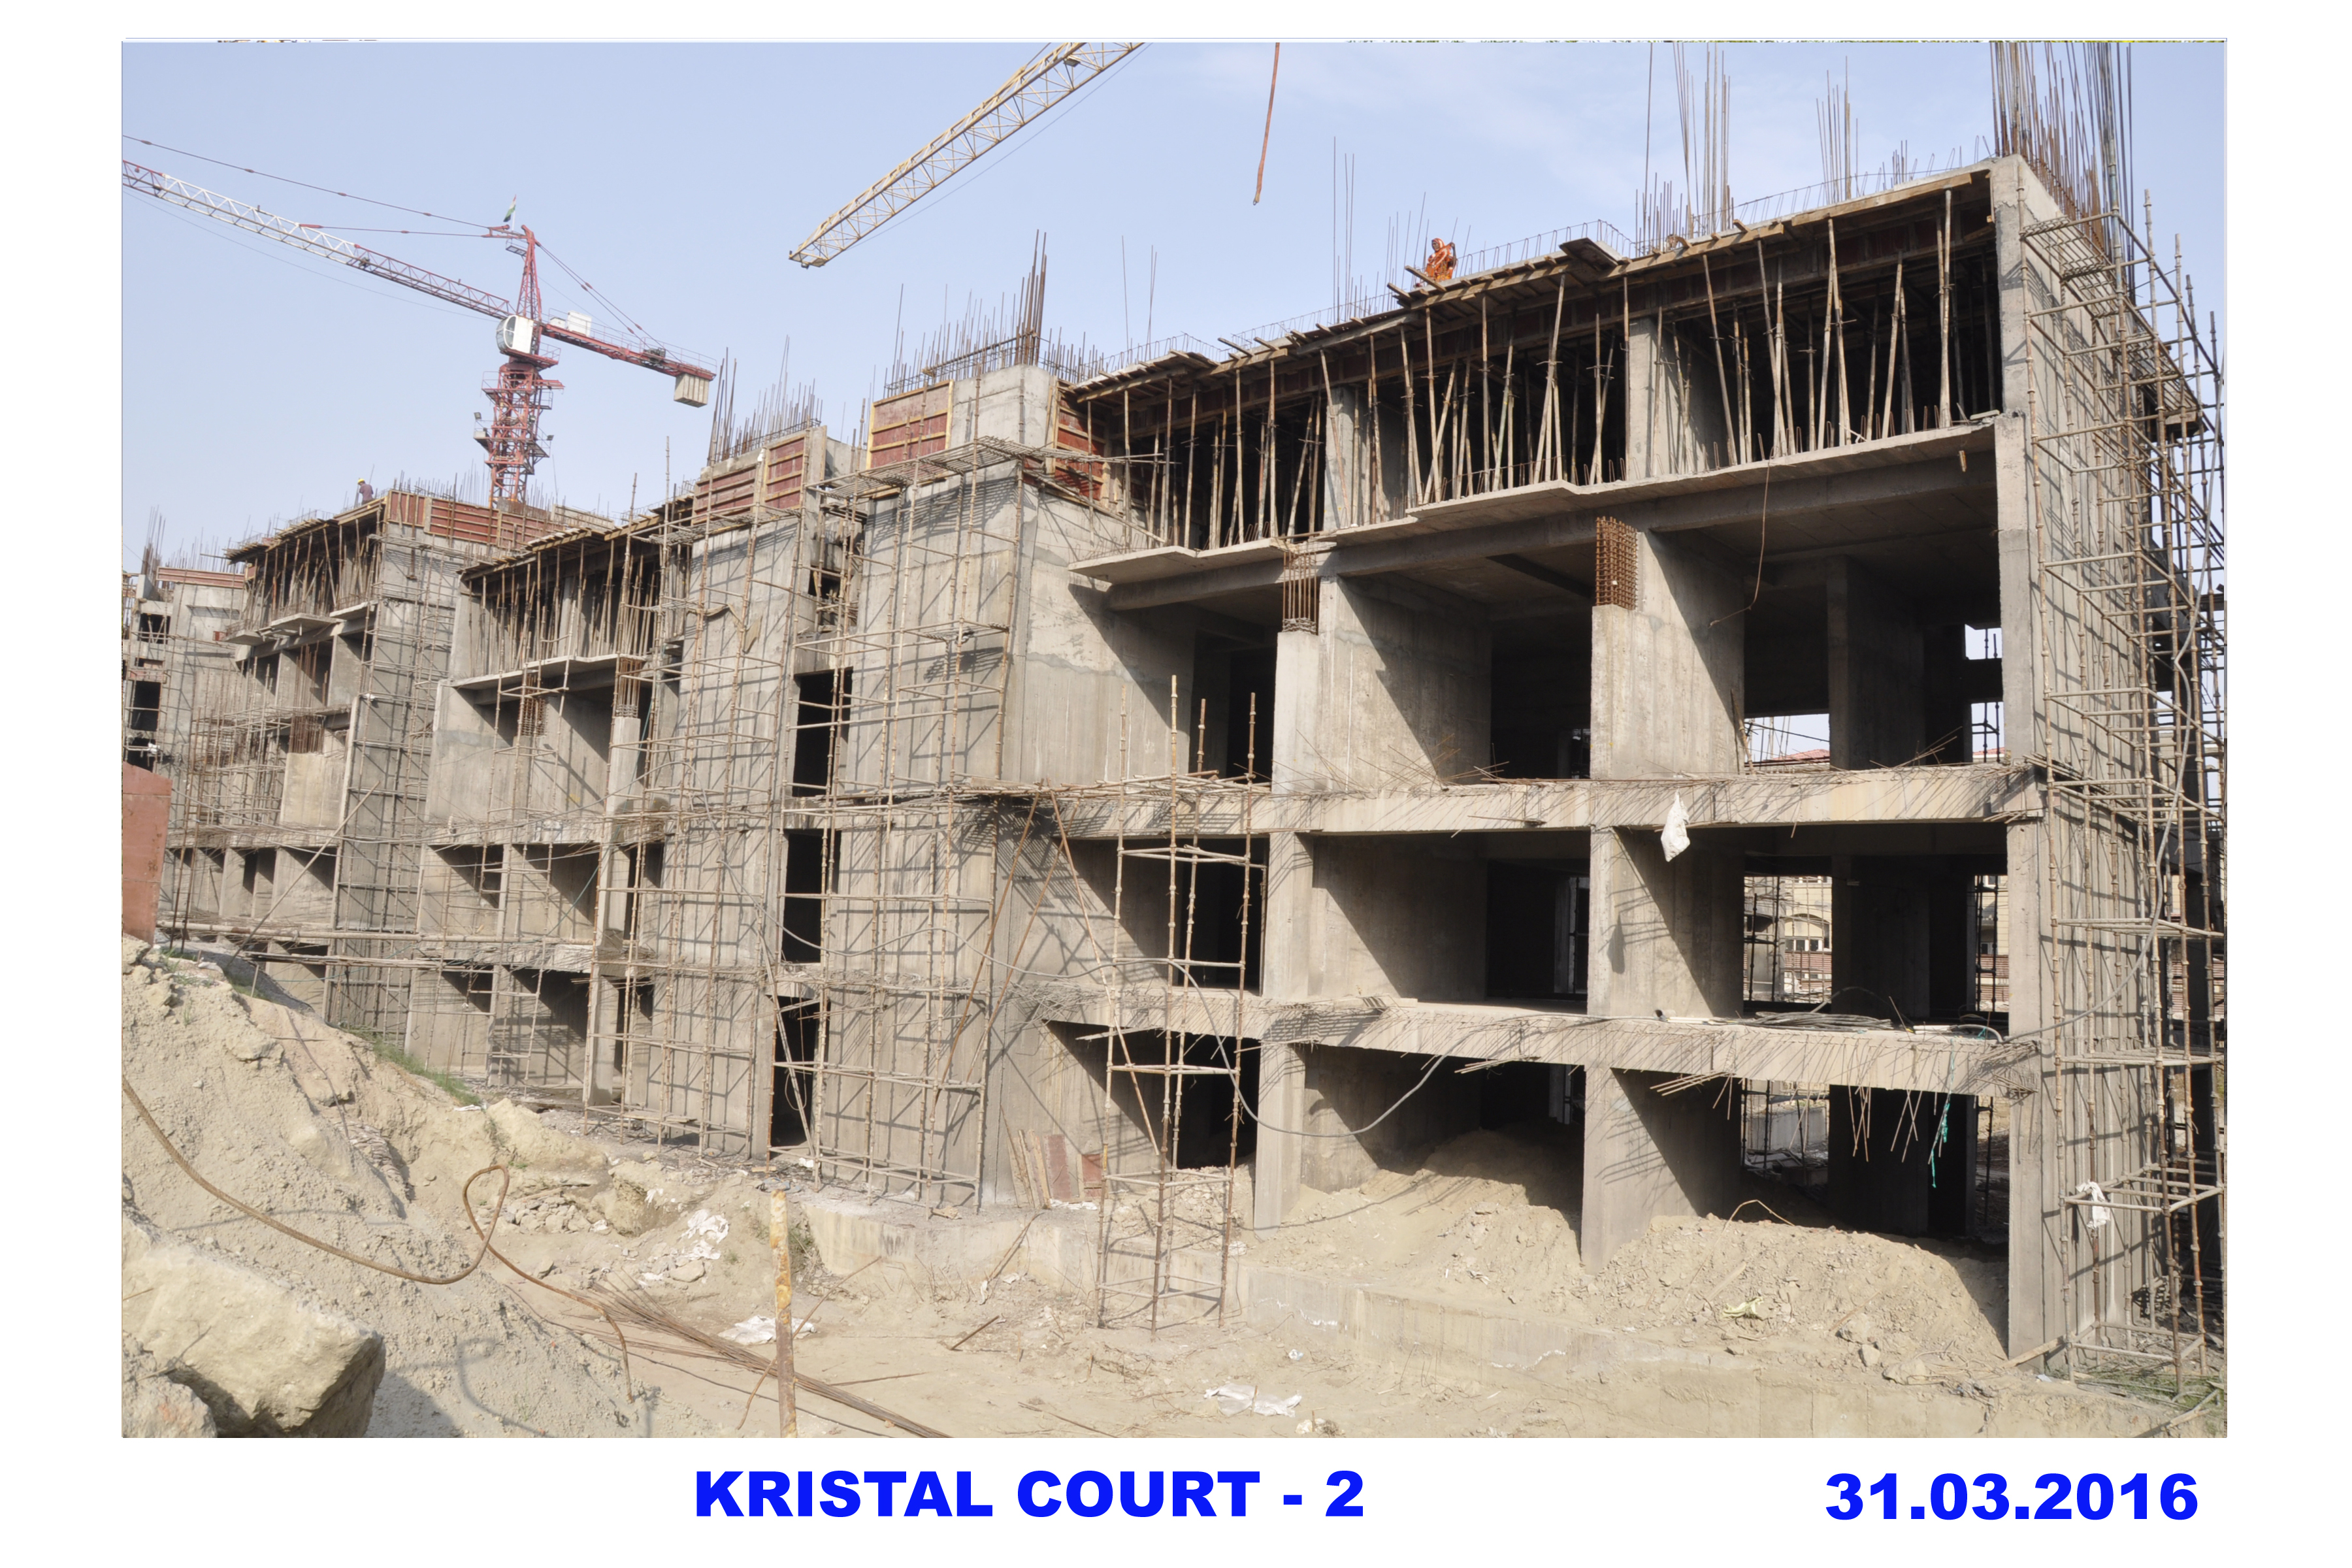 Kristal Court Tower - 2